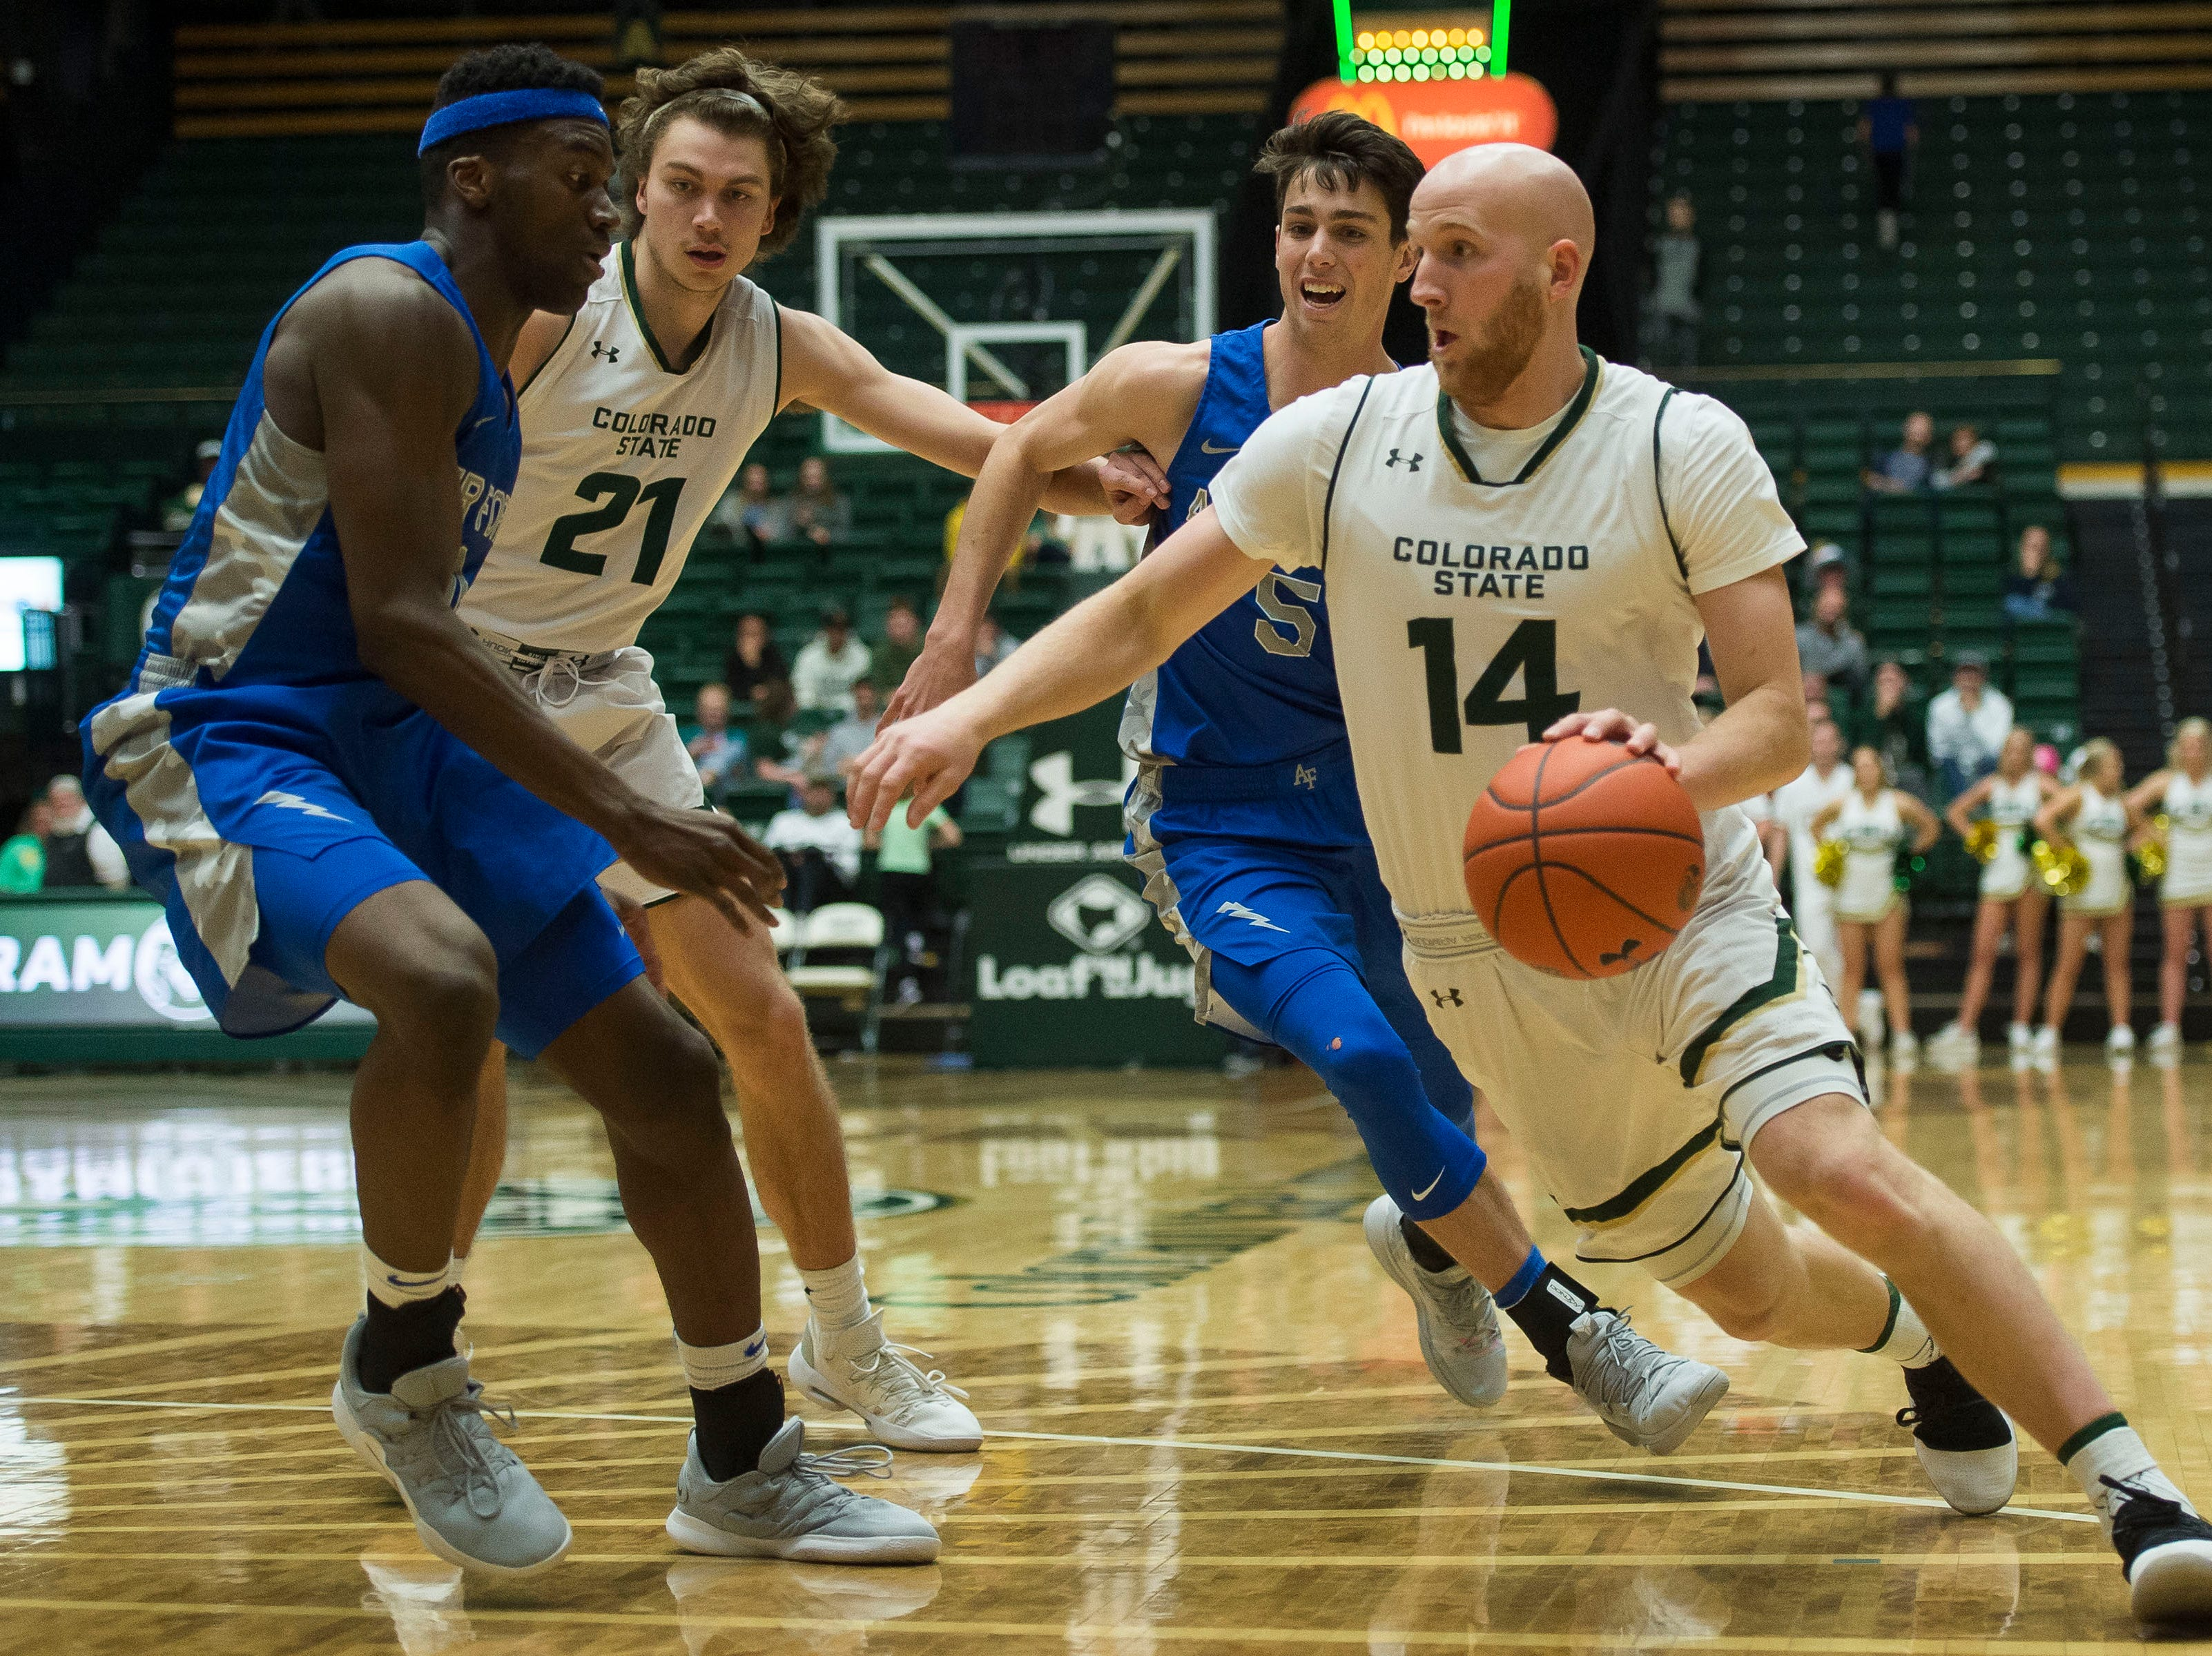 Colorado State University senior guard Robbie Berwick (14) drives into the paint during a game against the Air Force Academy on Tuesday, Jan. 8, 2019, at Moby Arena in Fort Collins, Colo.